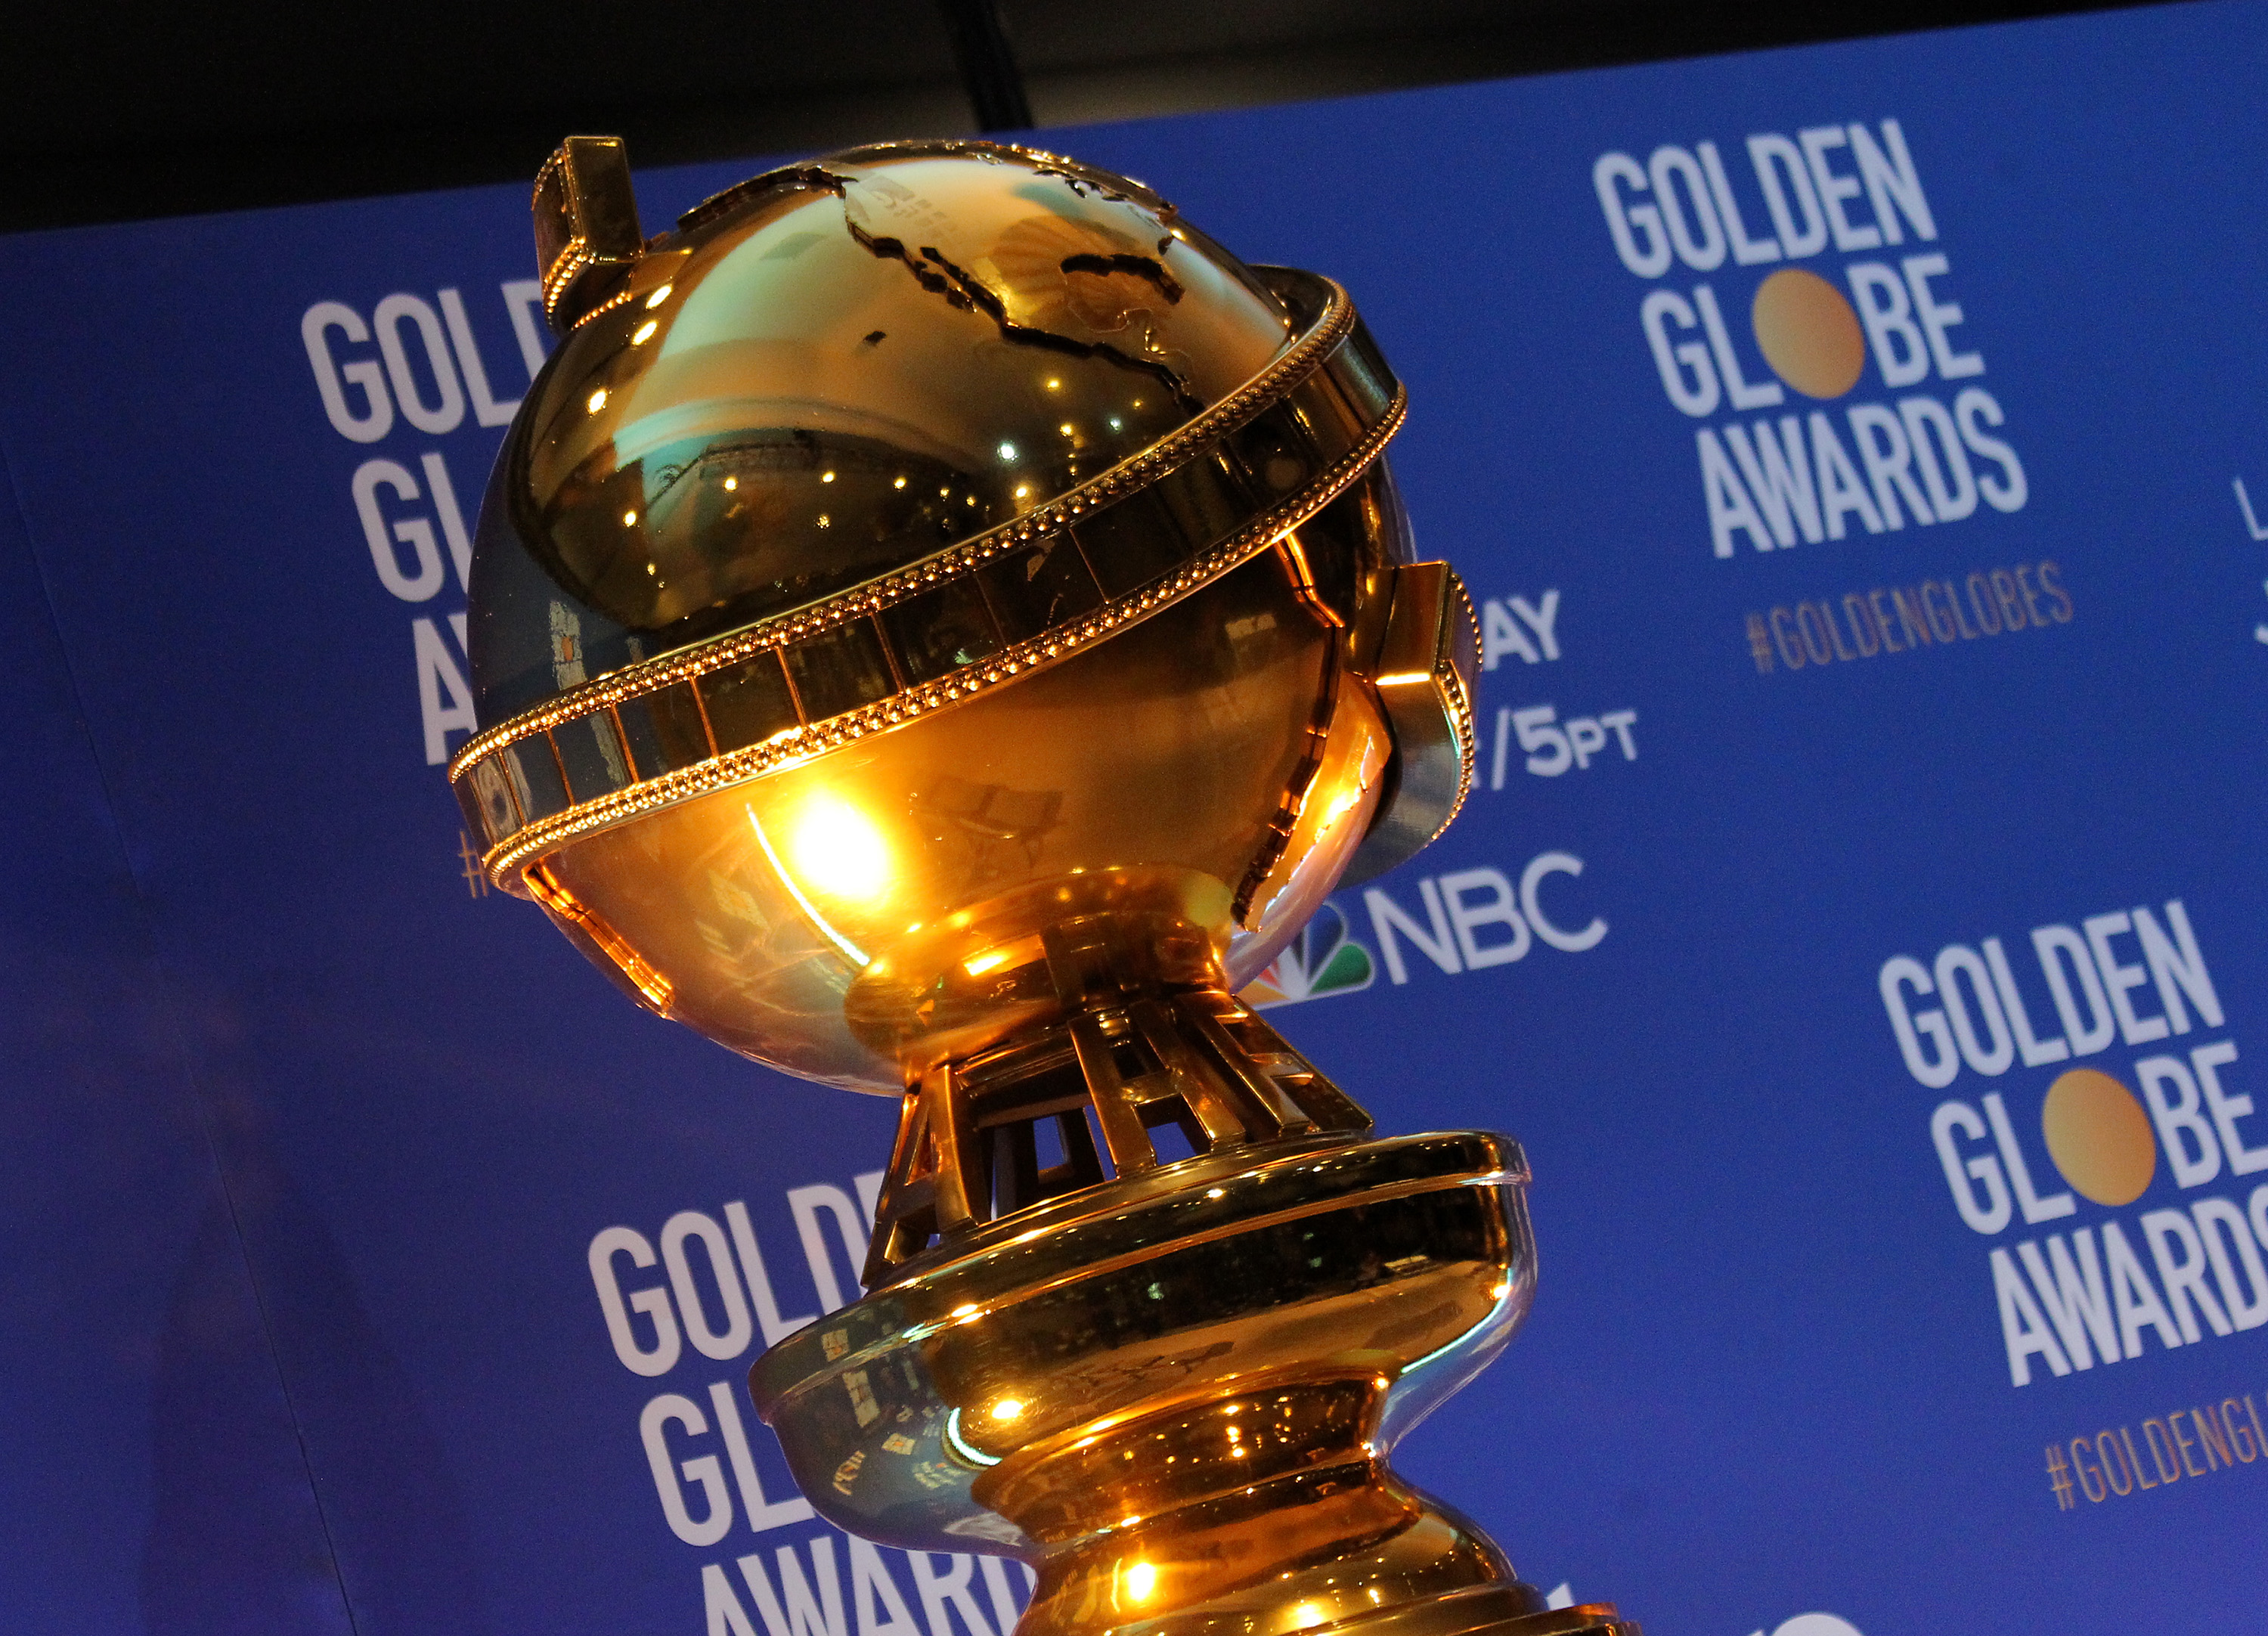 77th Golden Globes Nominations